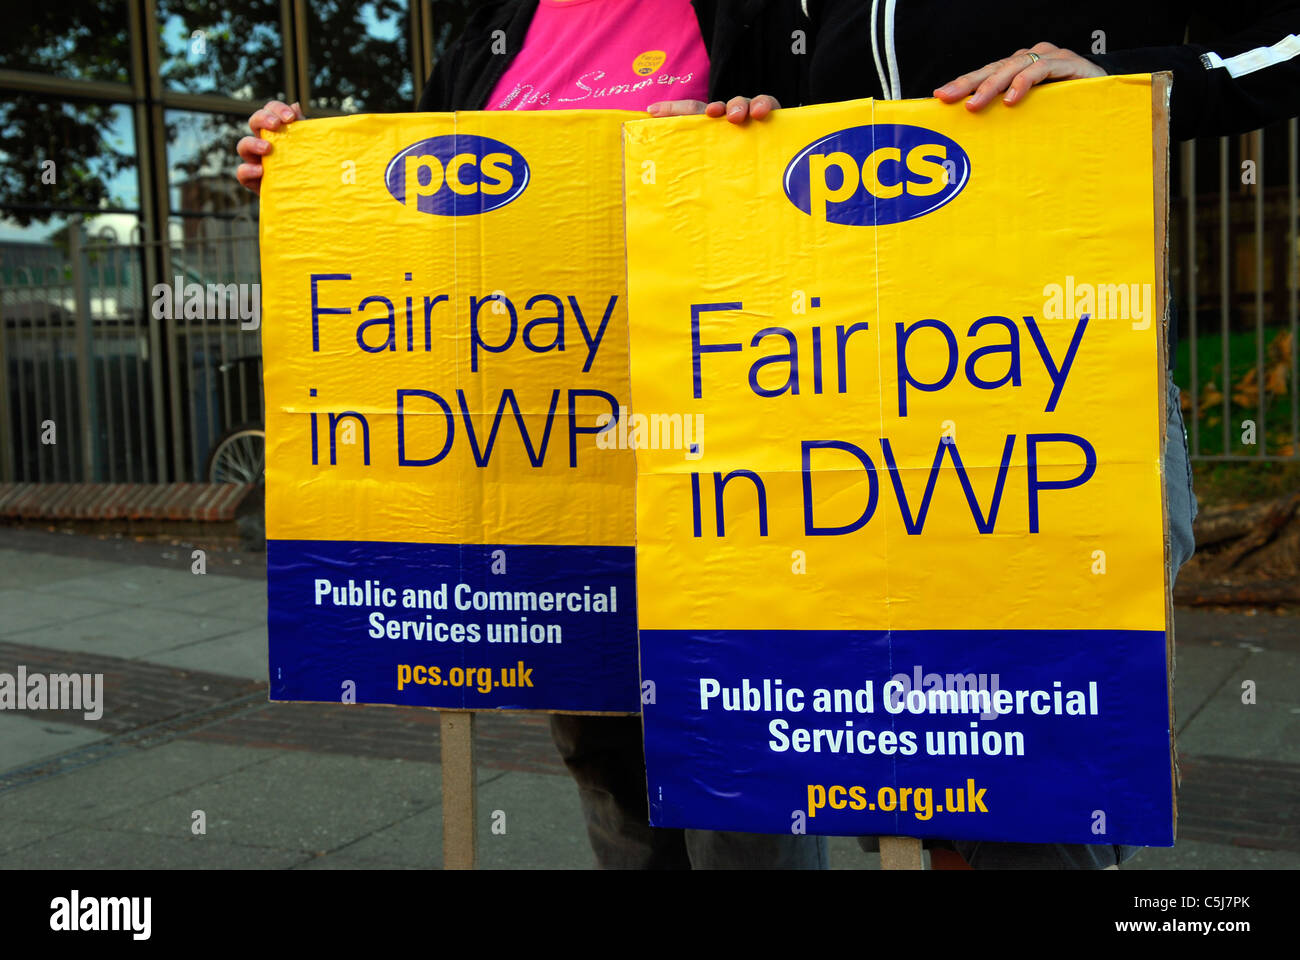 PCS placards on picket line during strikes against public sector cuts, Southampton, Hampshire, UK. 30 June 2011. - Stock Image